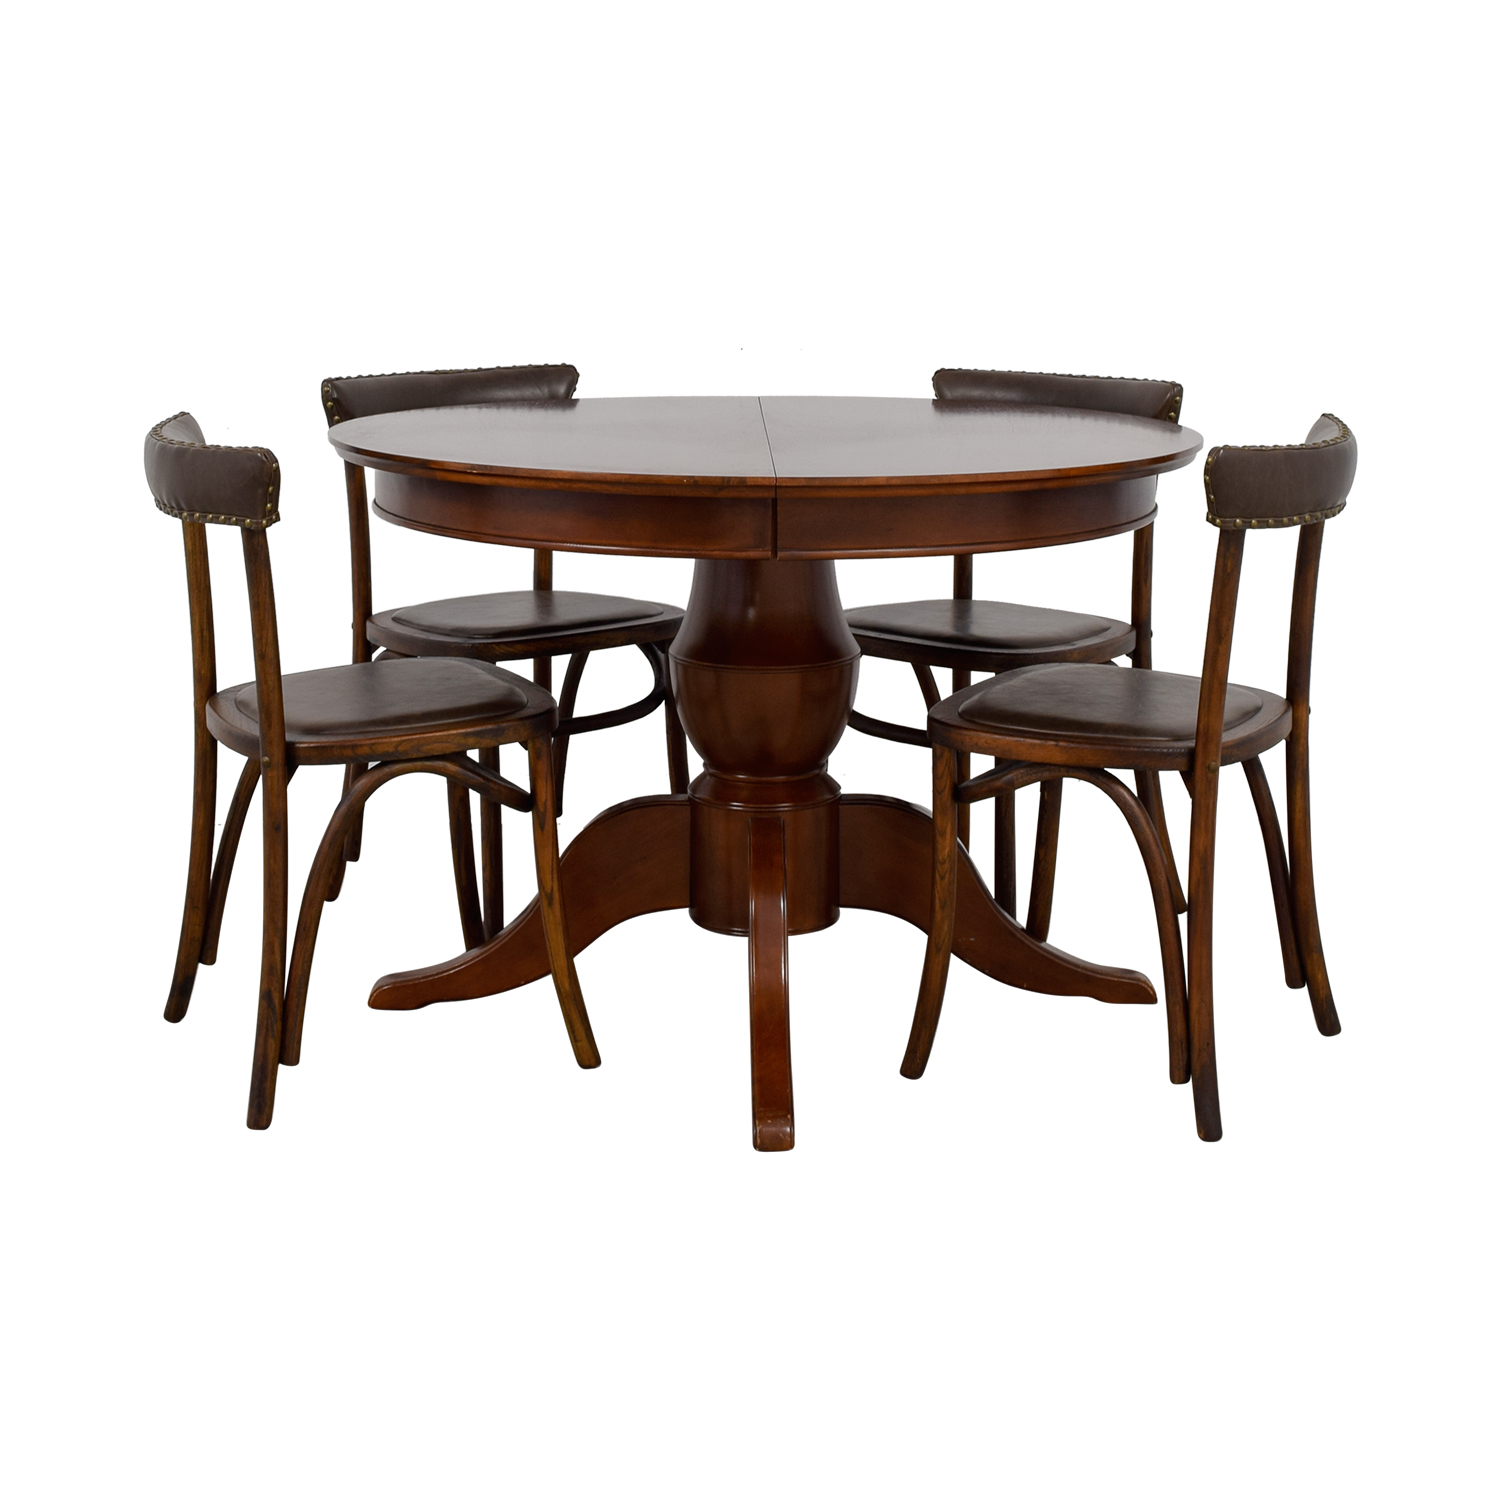 buy Pottery Barn Round Spindle Table with Extension Leaf Dining Set Pottery Barn Sofas